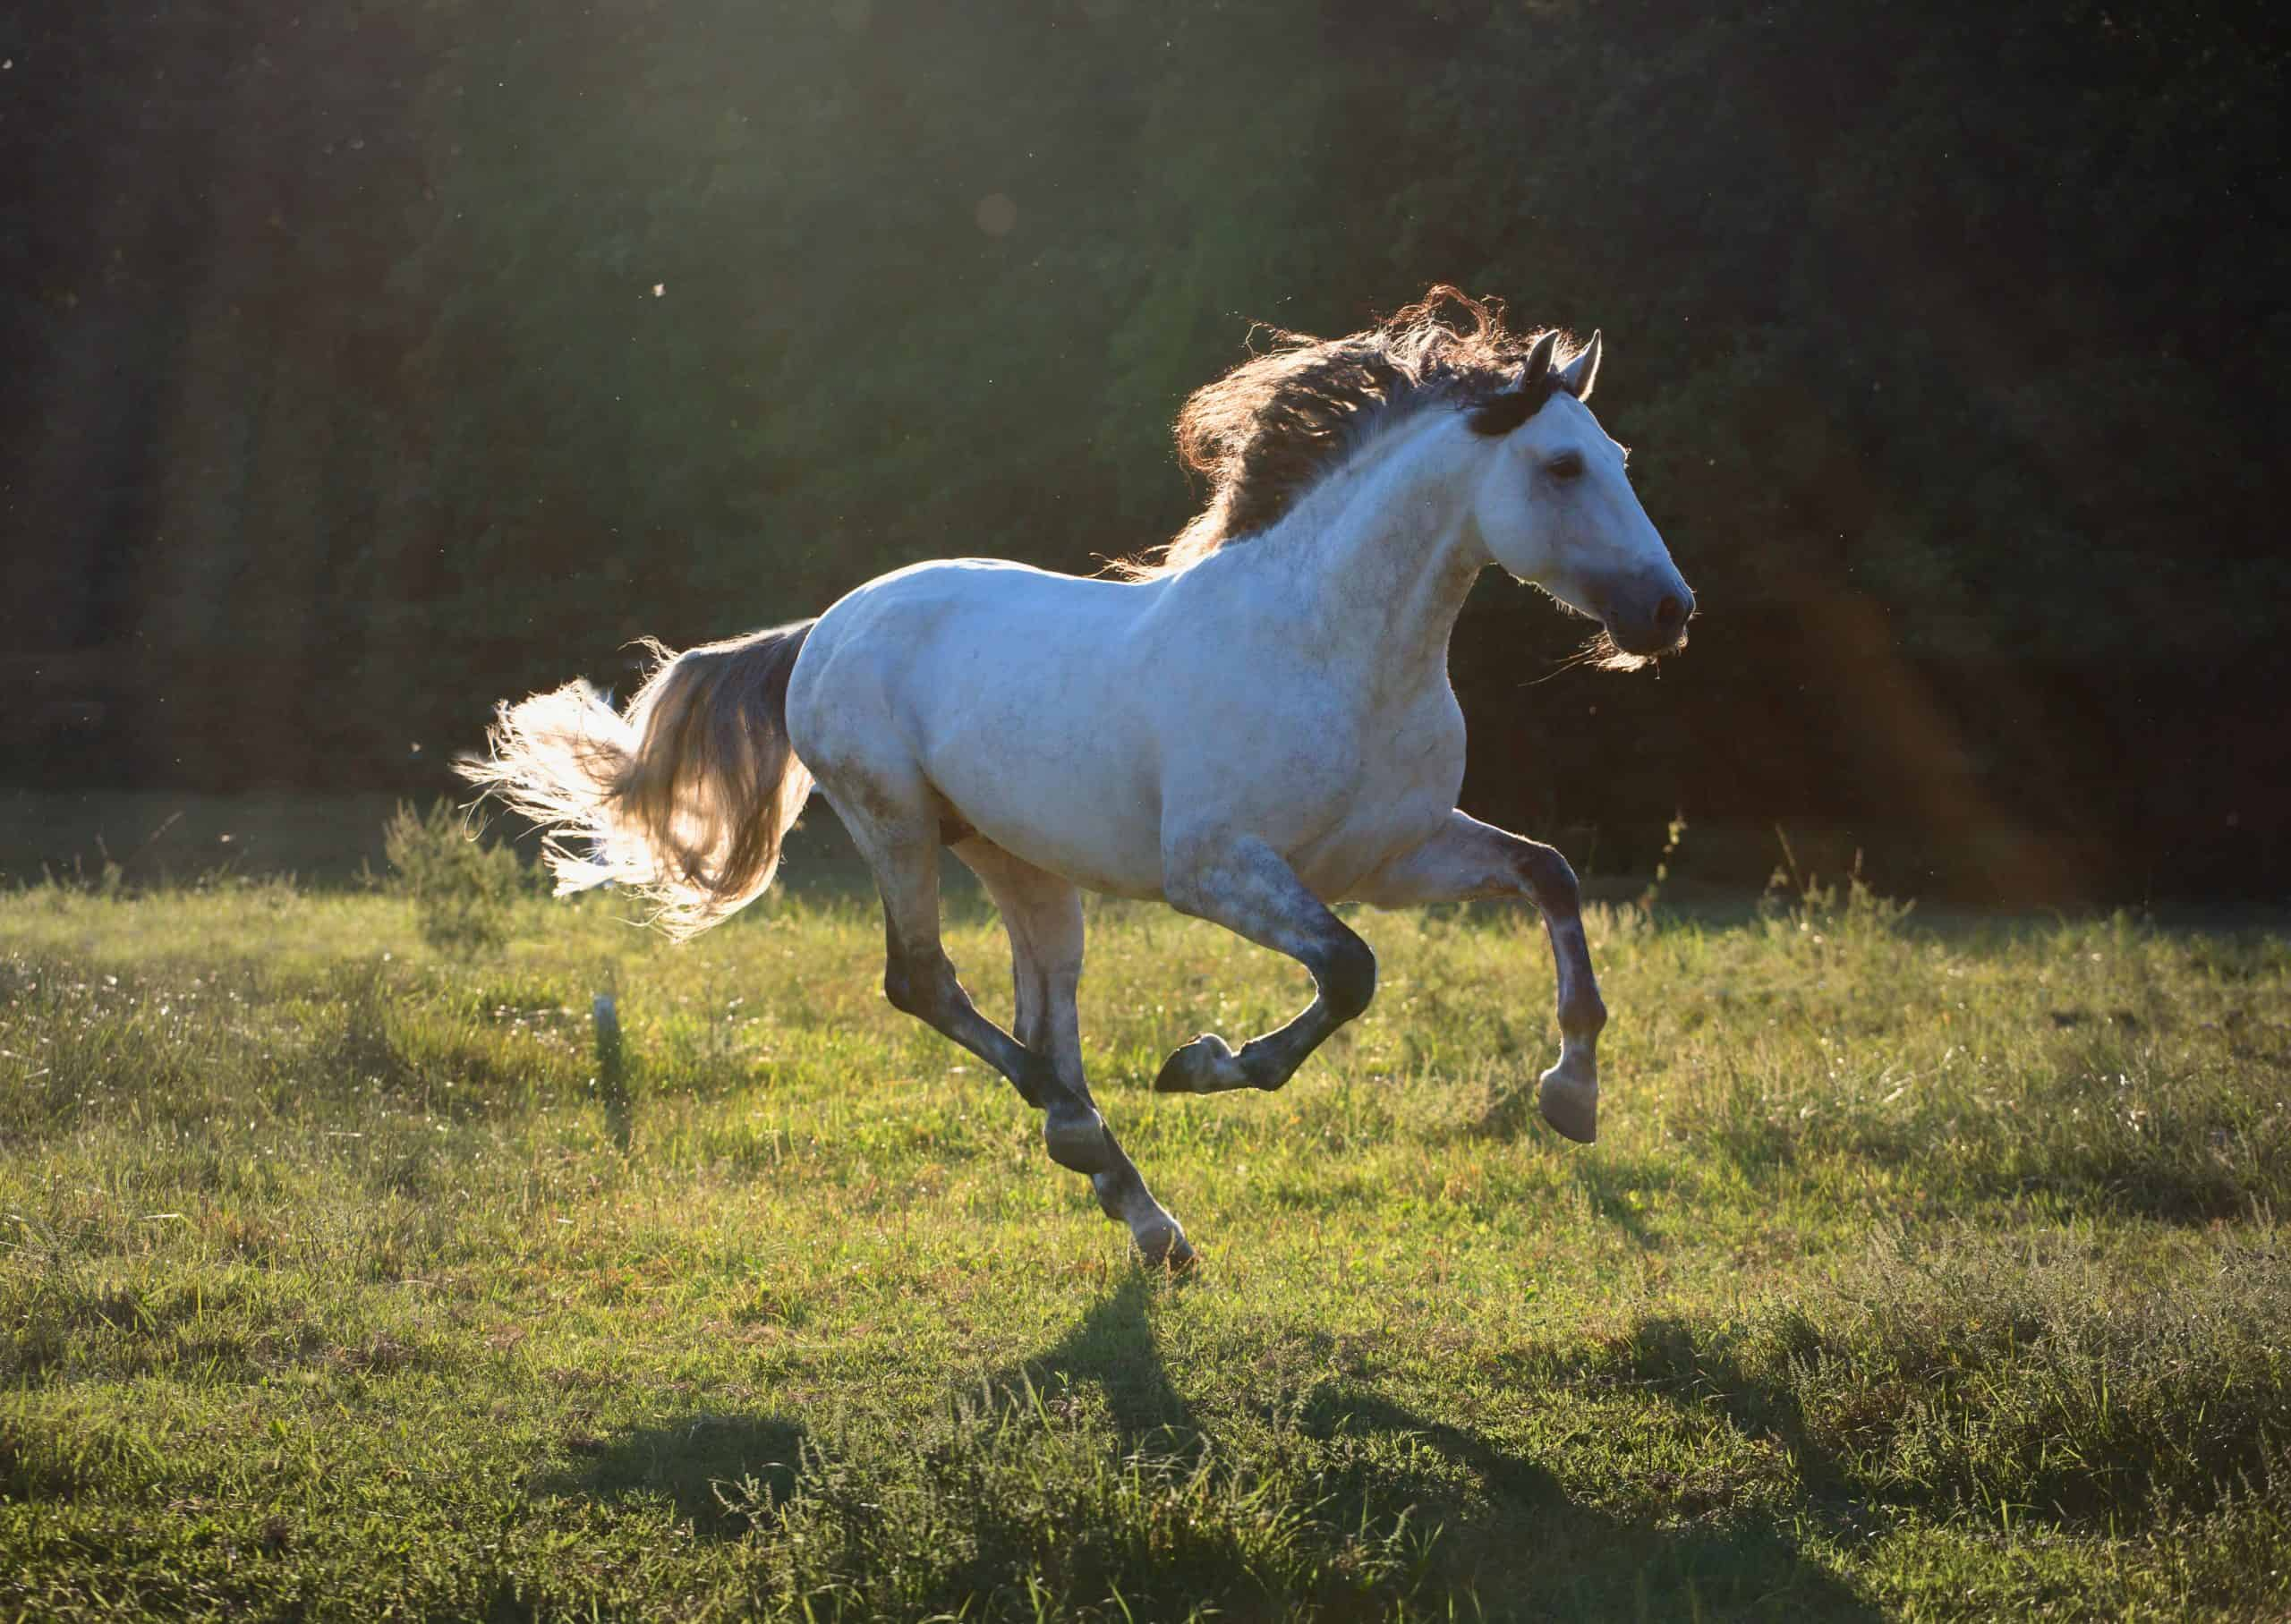 Gray horse run on the dark green background in the sun light at the summer